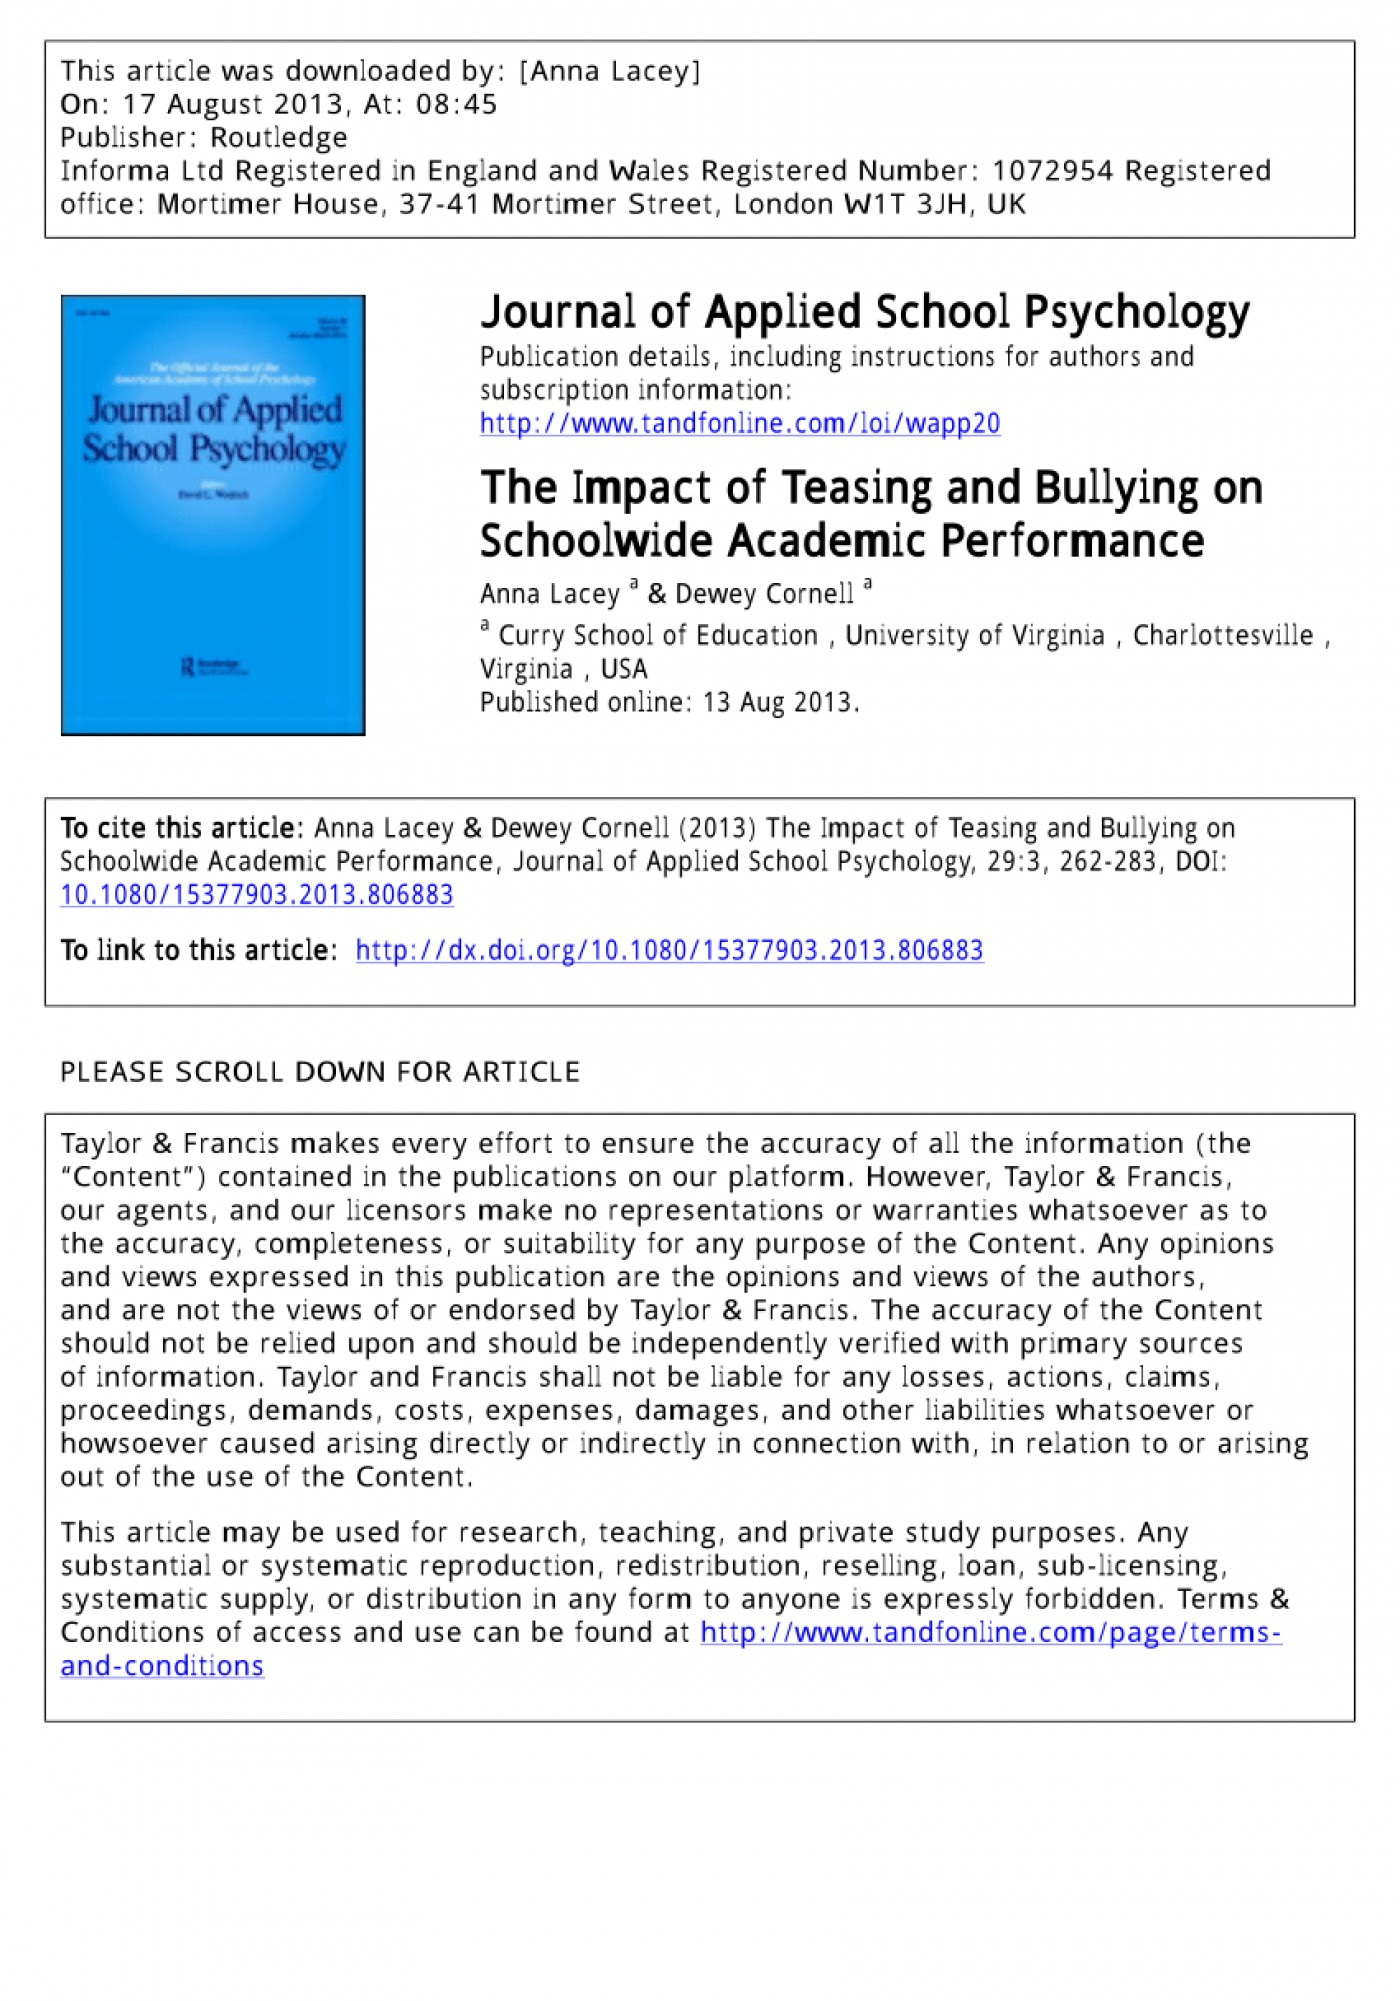 004 Research Paper Psychological Effects Of Bullying Breathtaking 1400